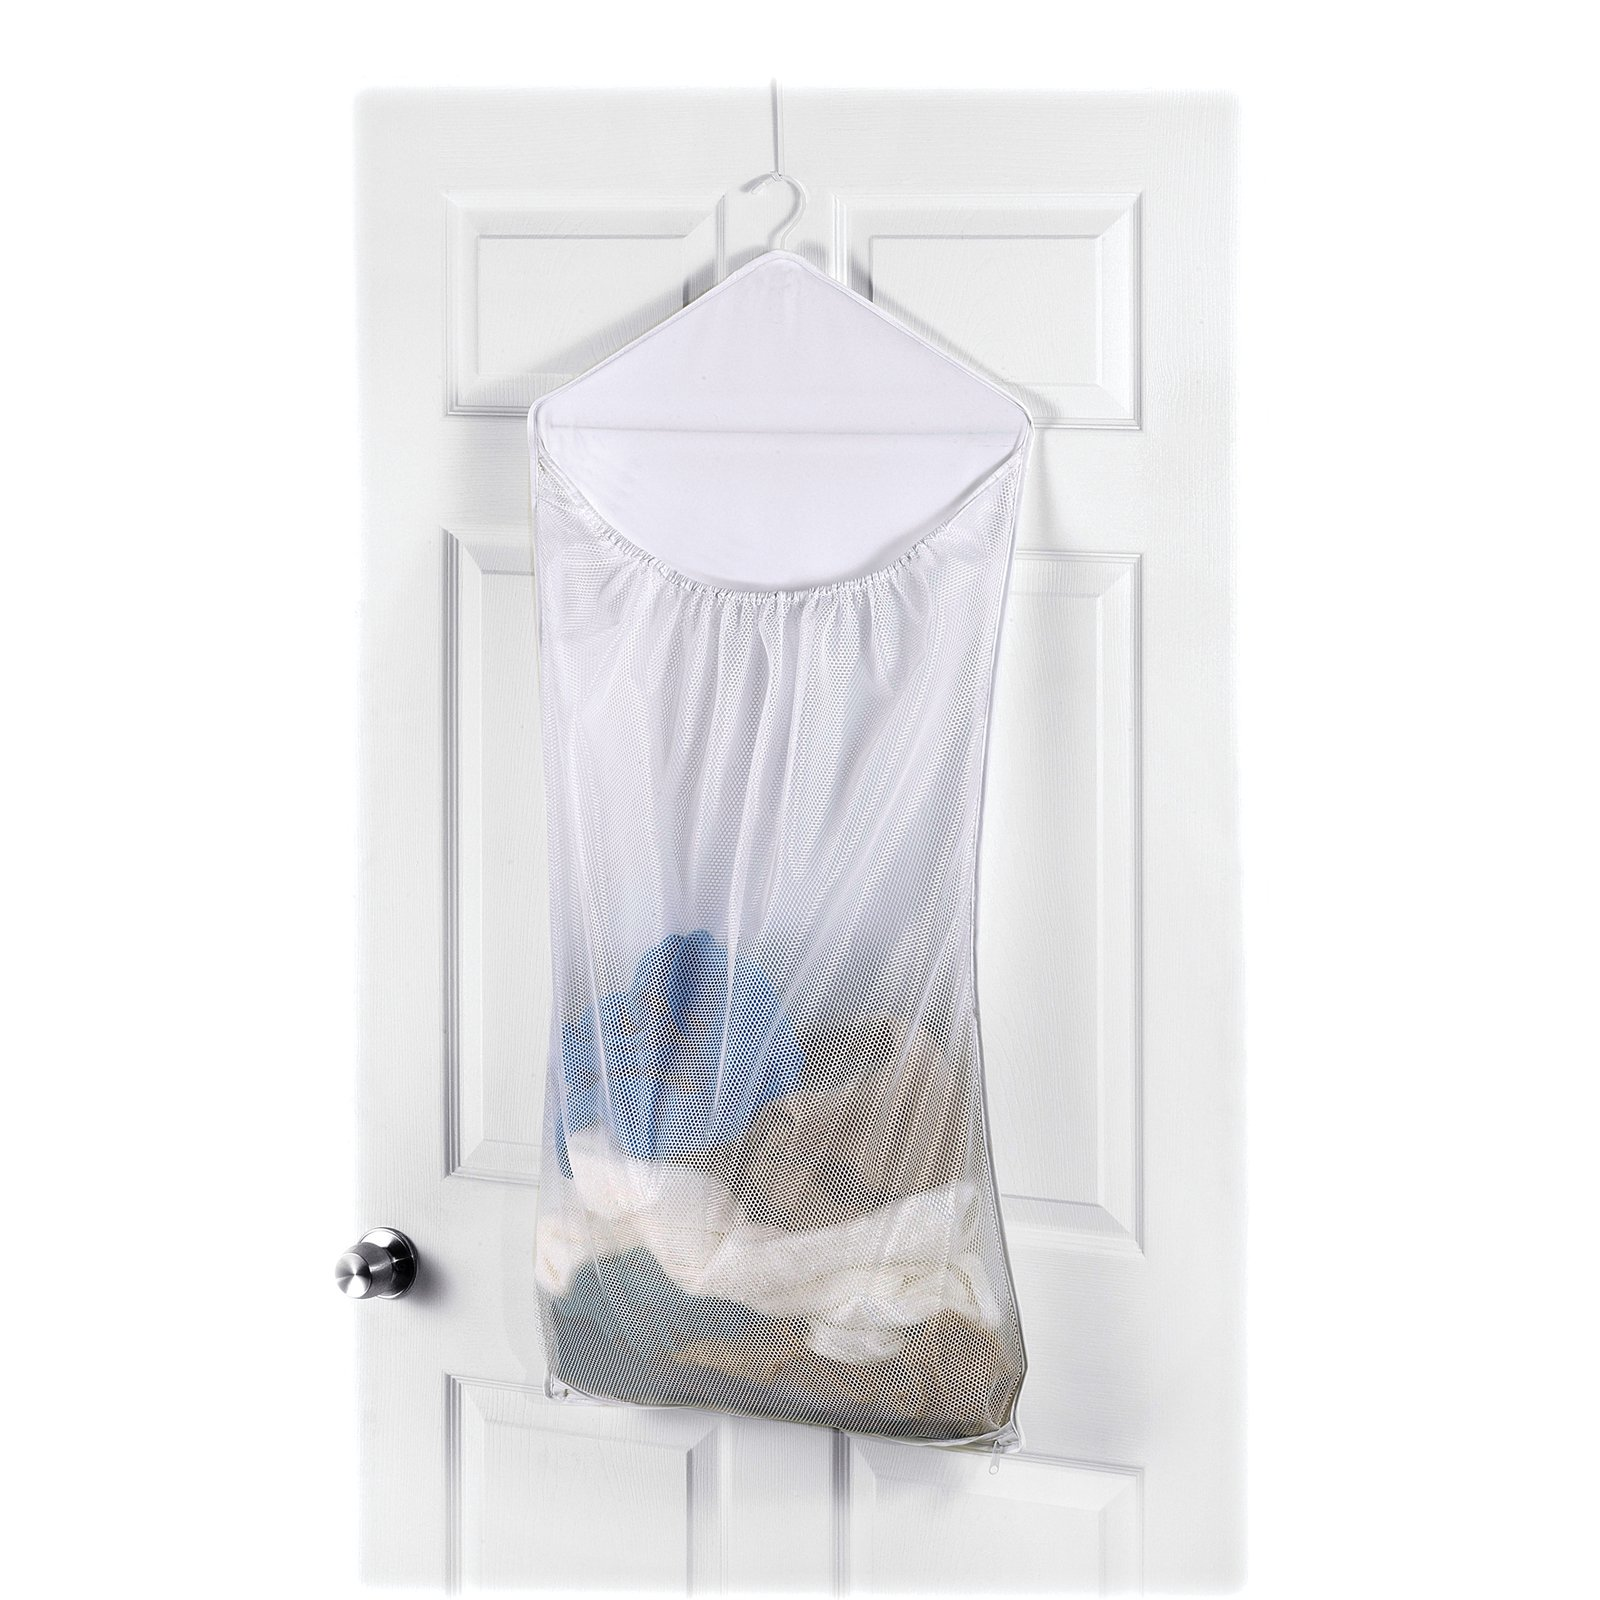 Beau Whitmor Dura Clean Over The Door Hanging Laundry Hamper White